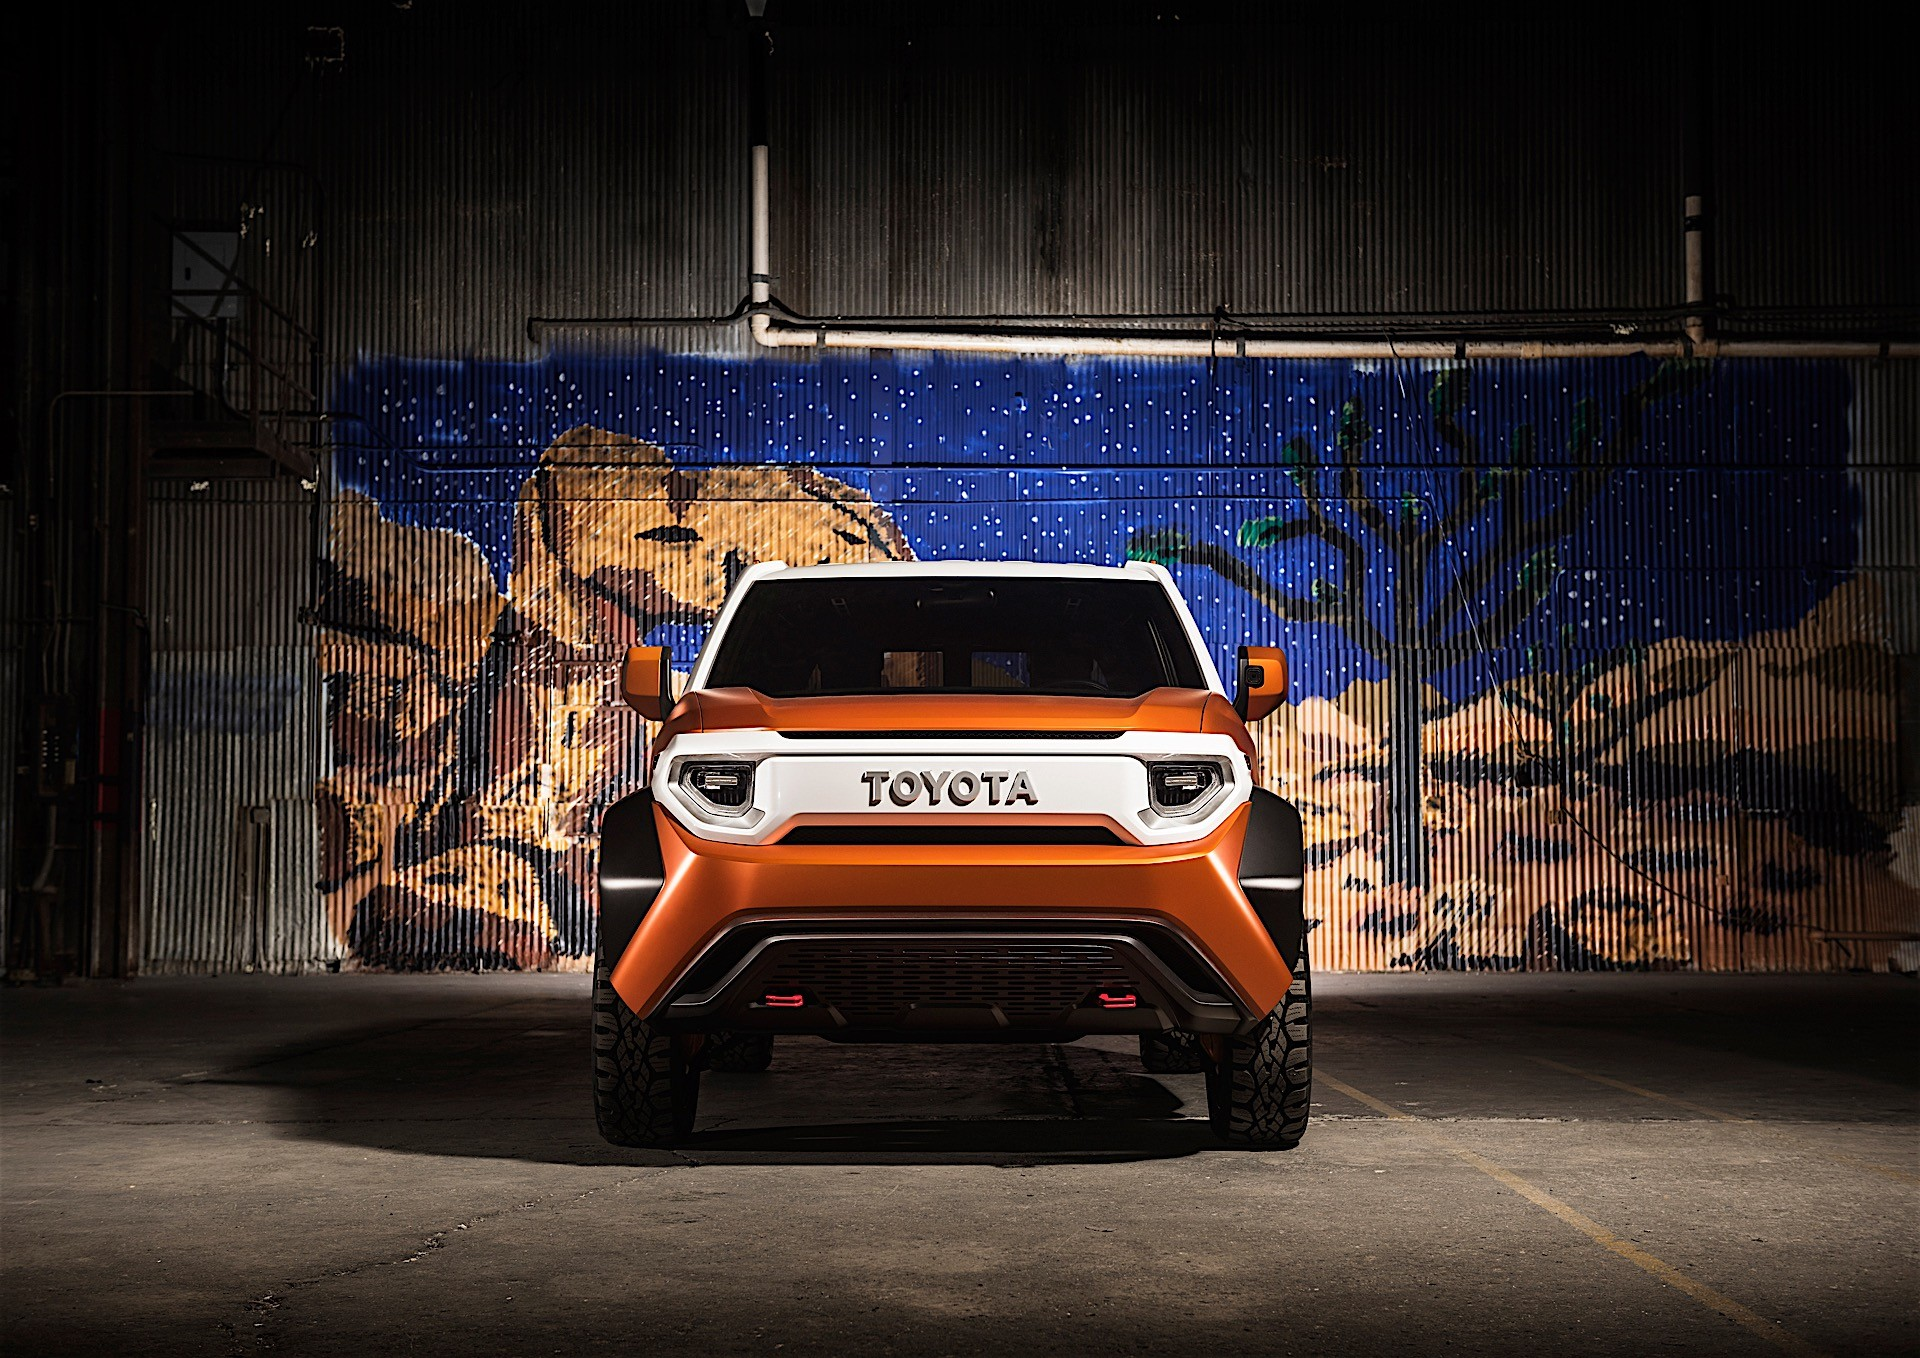 New Toyota Suv 2020 New Toyota Crossover Coming To U.S. Market, Expected To Debut In